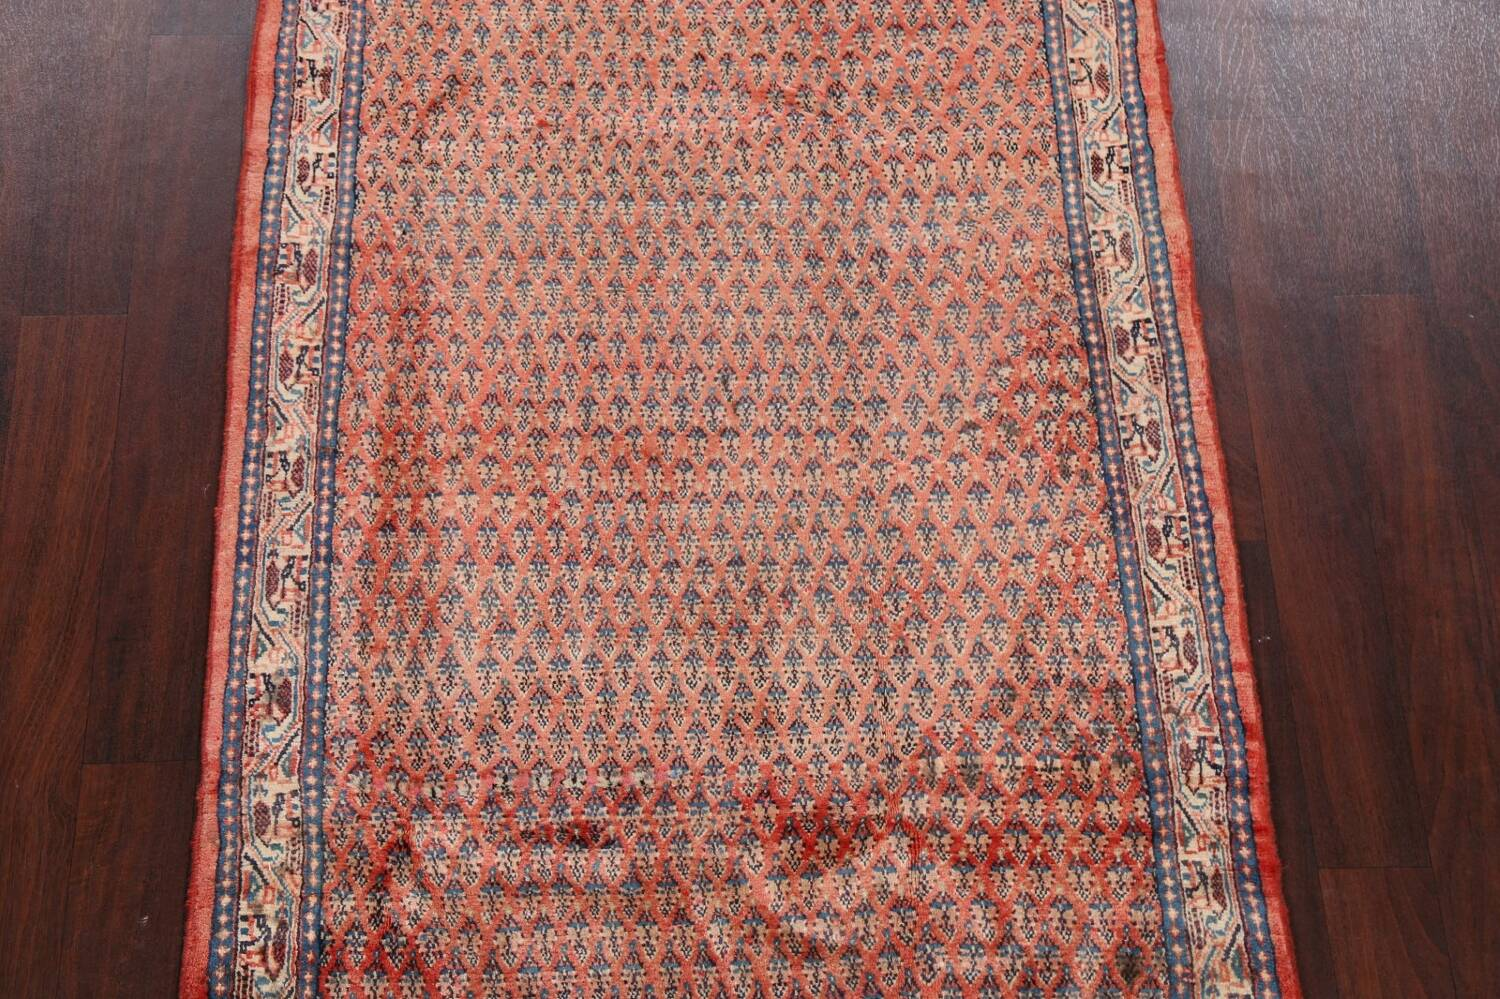 Vintage All-Over Boteh Botemir Persian Area Rug 4x7 image 3